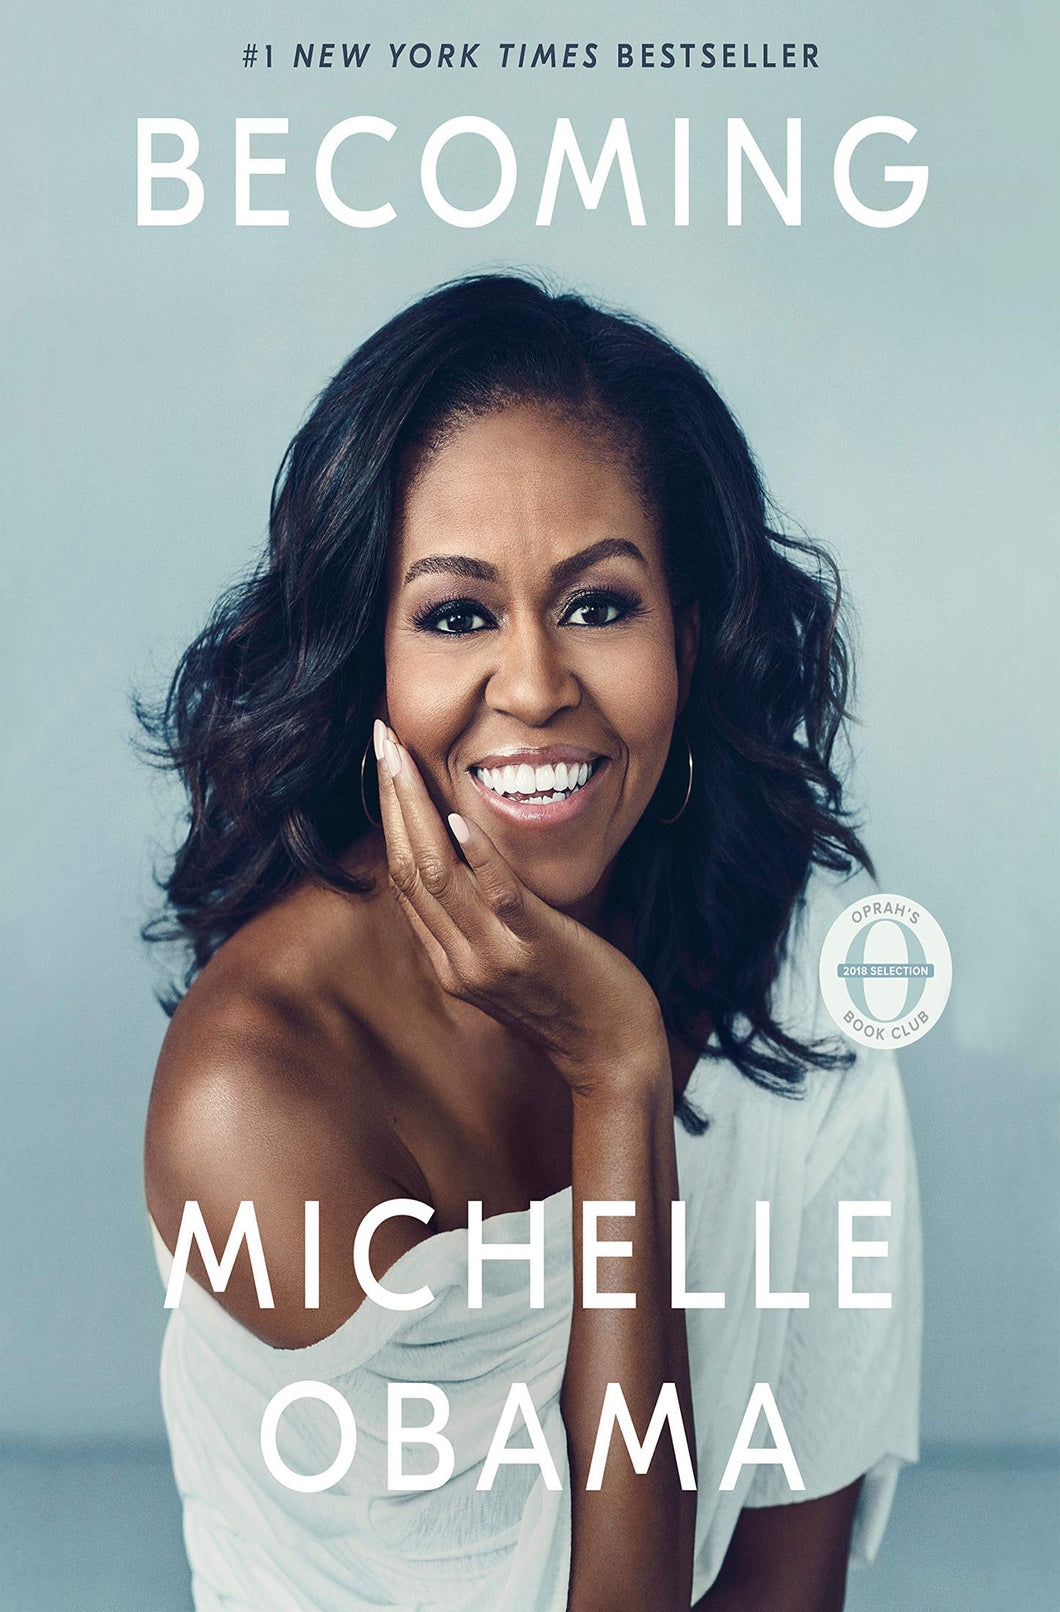 Becoming by Michelle Obama - eBook, (Phone, Tablet, Computer) Fast Instant delivery